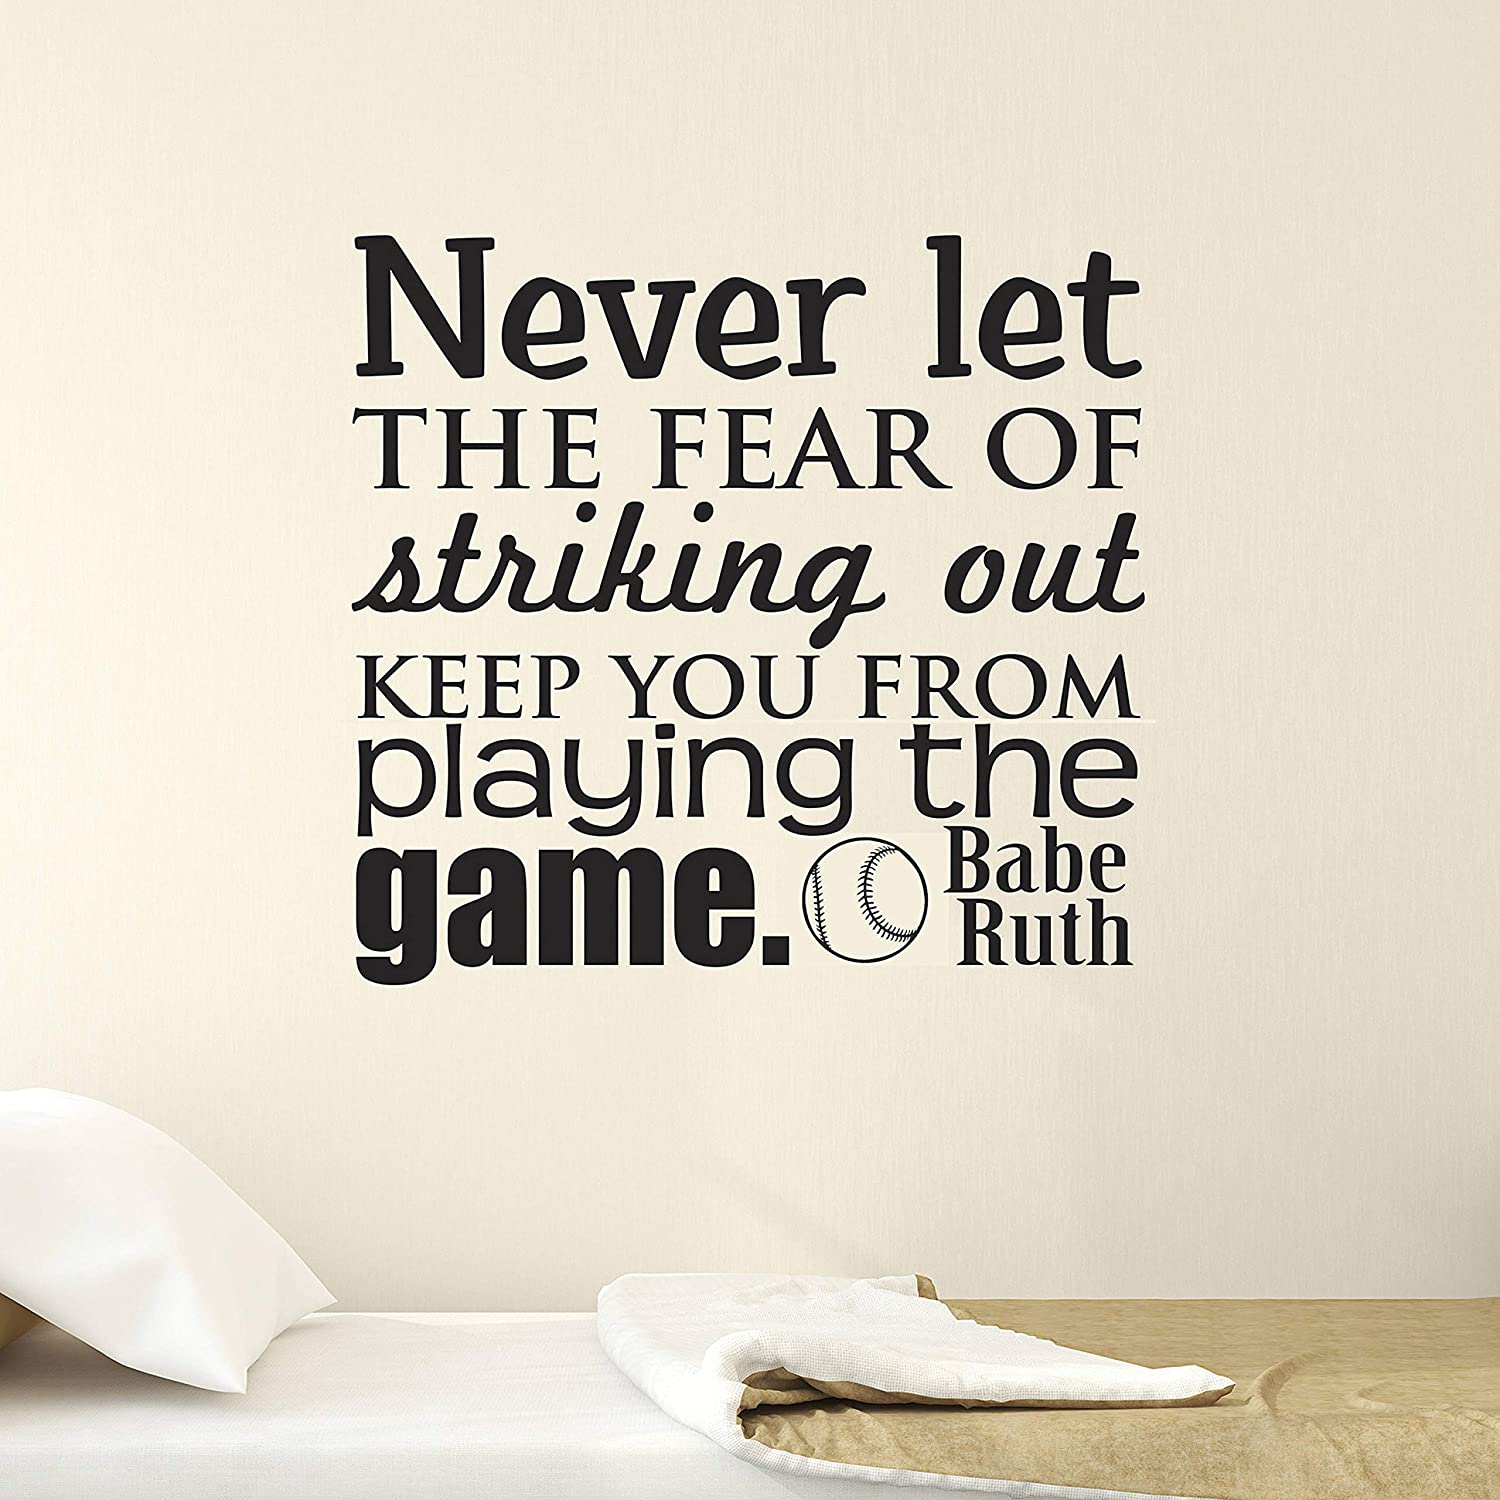 BYRON HOYLE Sports Wall Decal, Boys Bedroom Decal, Babe Ruth, Bedroom Wall Decal, Baseball, Youth Wall Decal, Vinyl Wall Decal, Fear of Striking Out